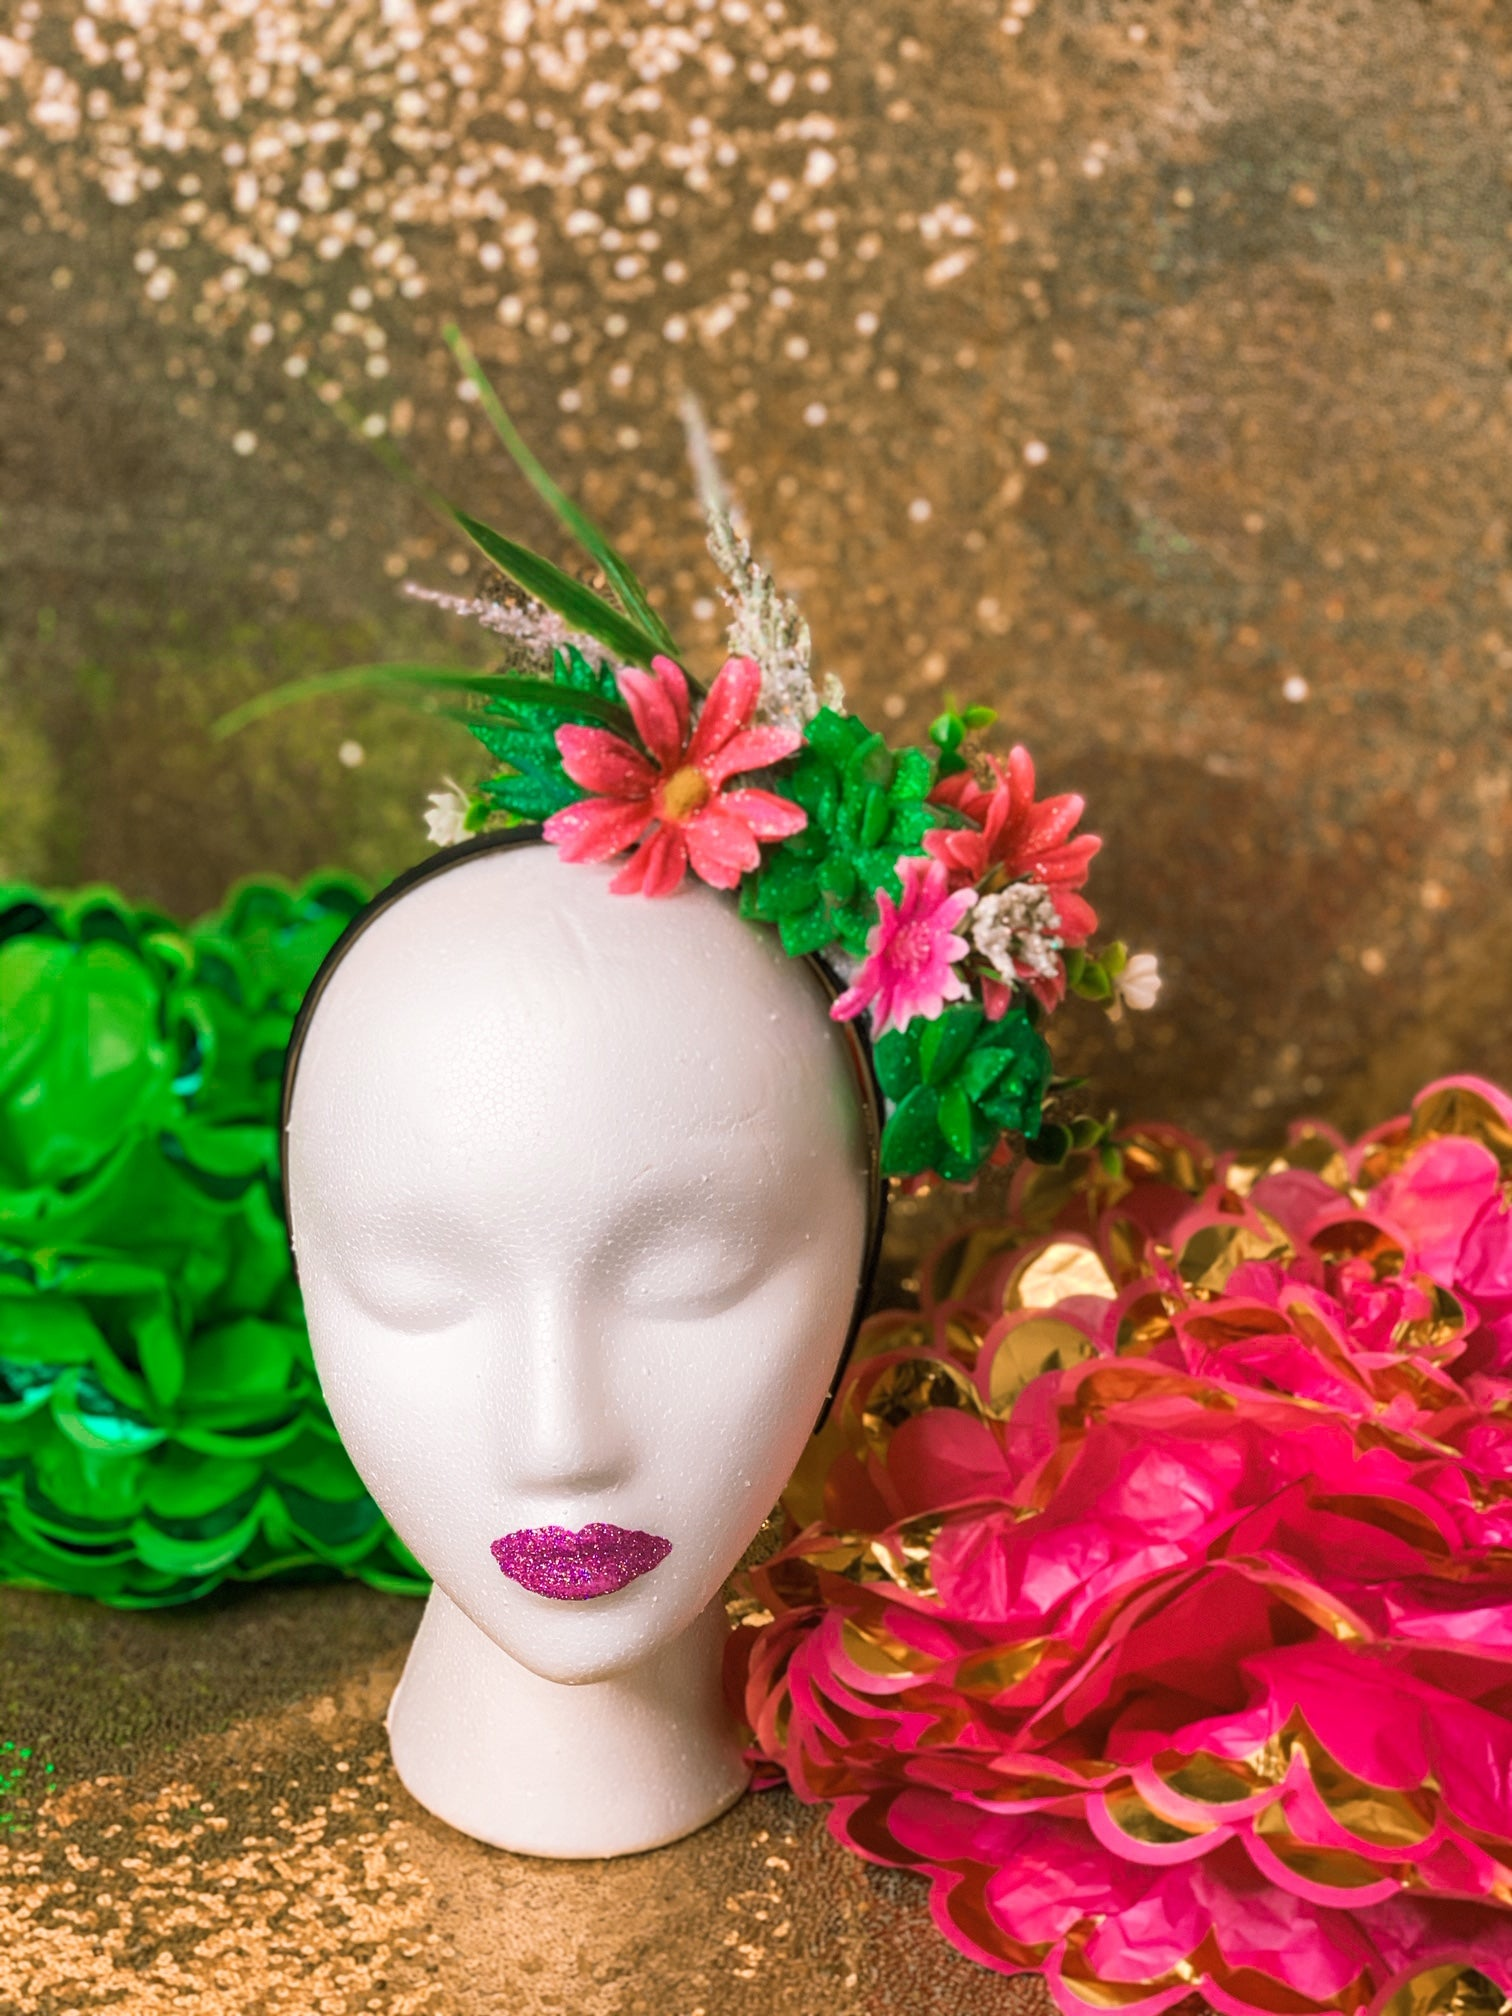 Crowned by Ellie sparkly succulent and bright pink floral crown